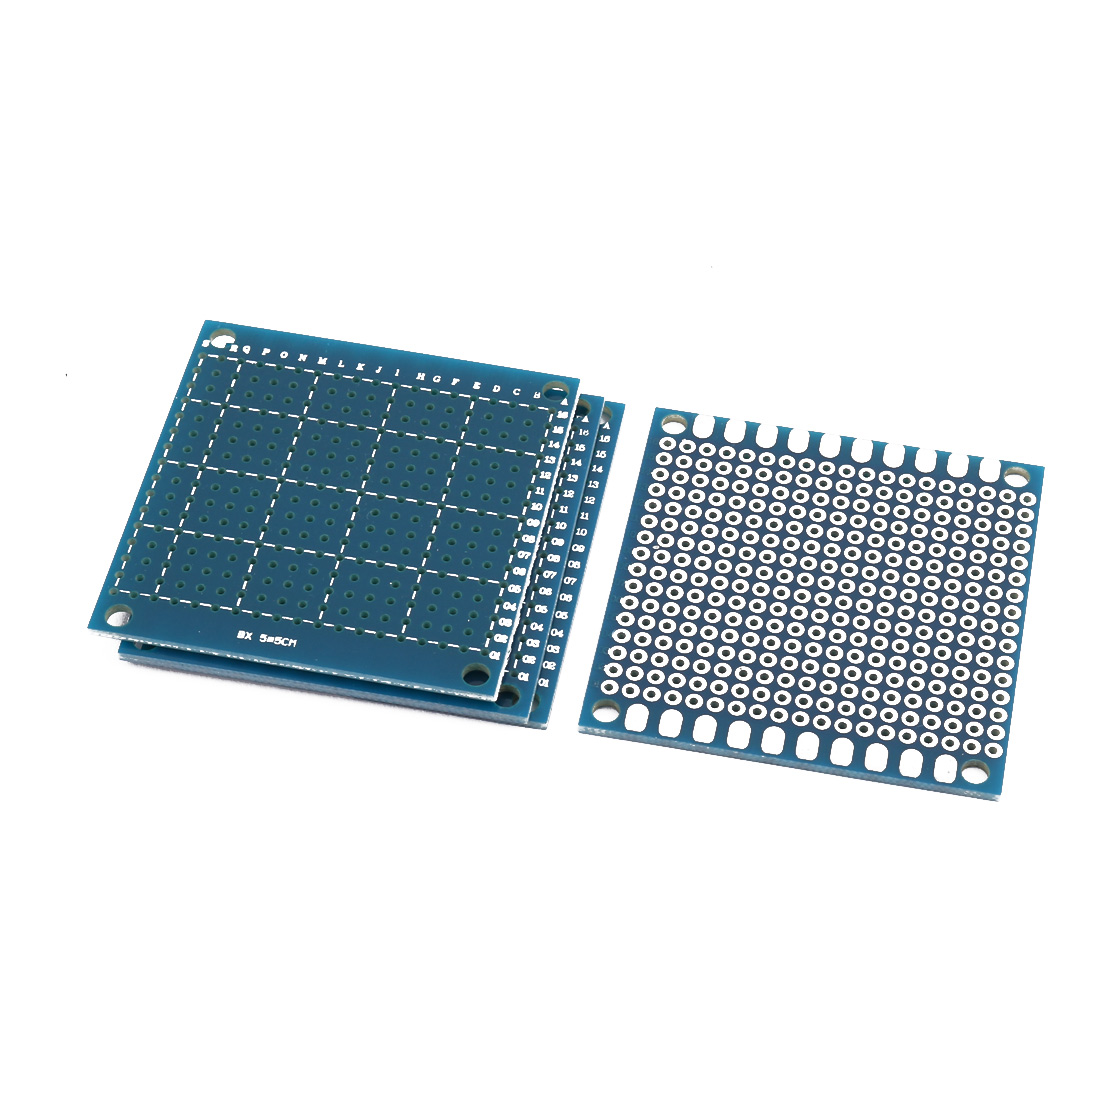 4 Pcs Single Sided Prototype Universal PCB Print Circuit Board 5 x 5CM Blue